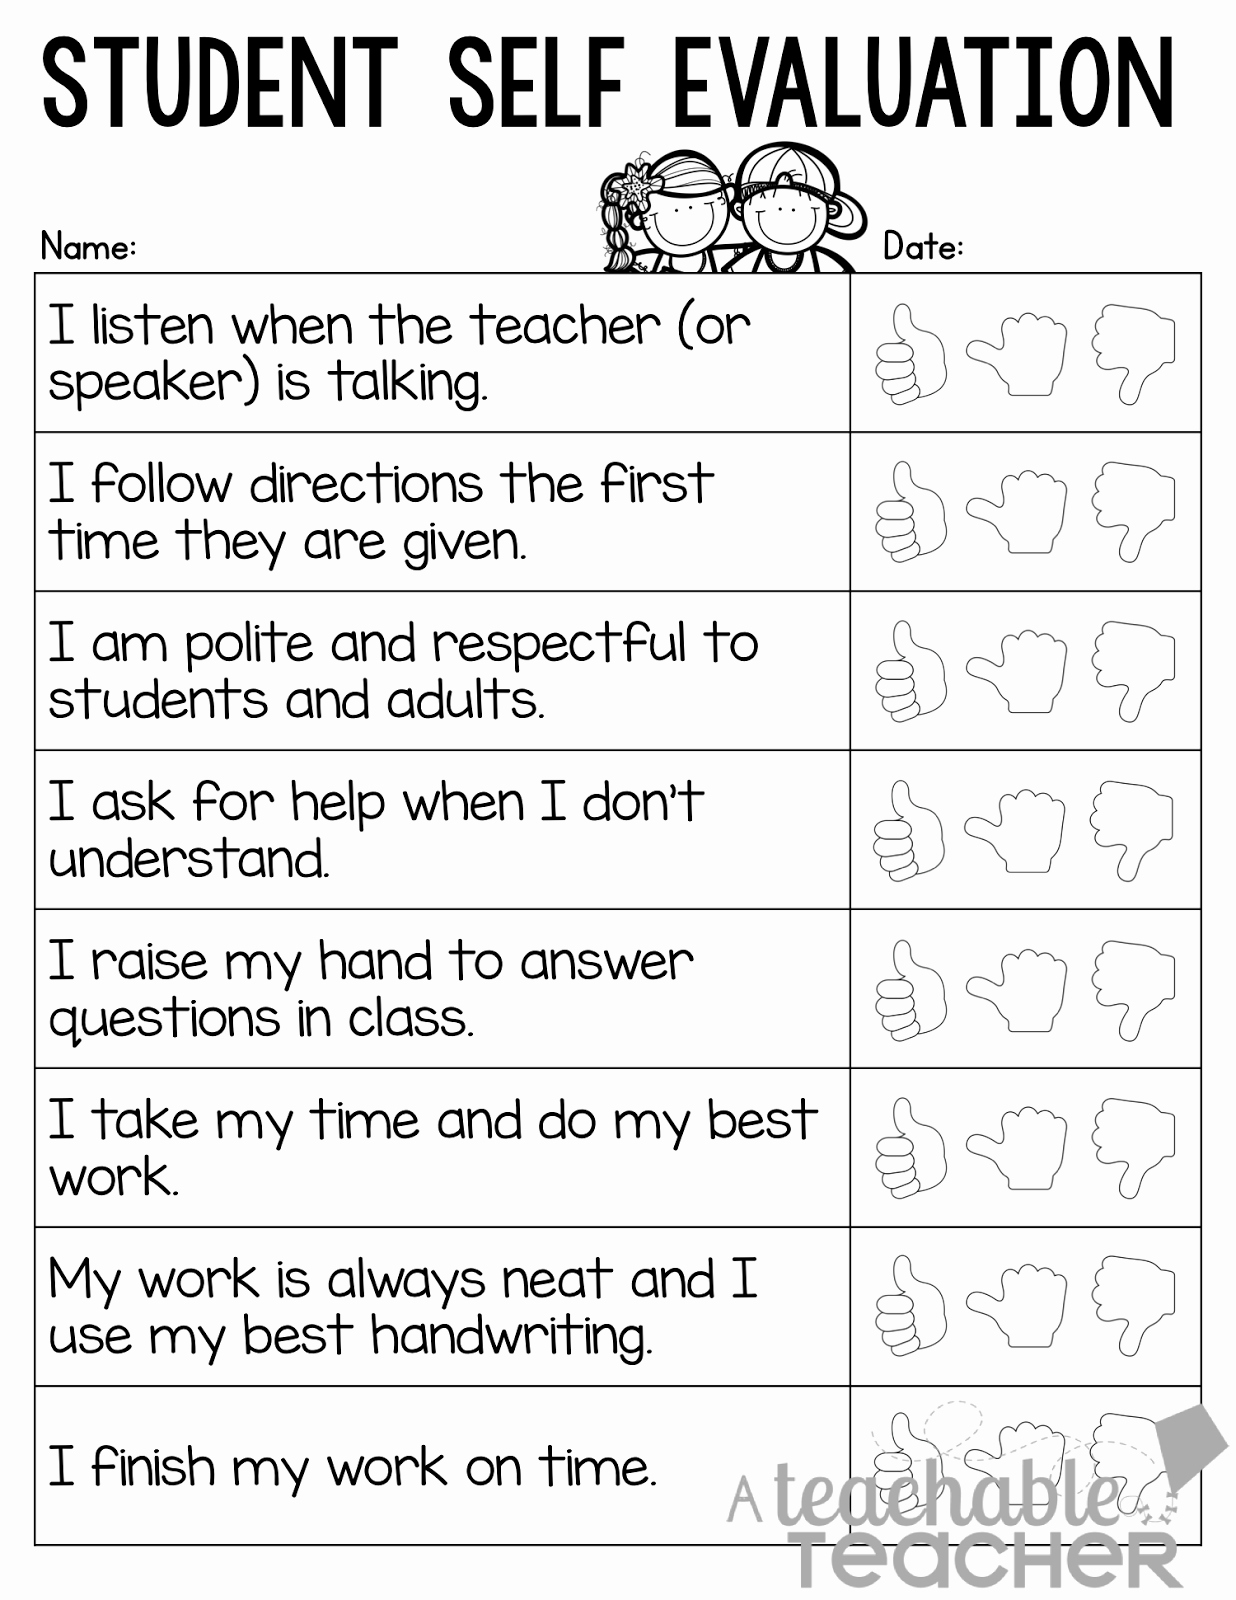 Student Self assessment Template Awesome A Teachable Teacher Parent Teacher Conference Tips and